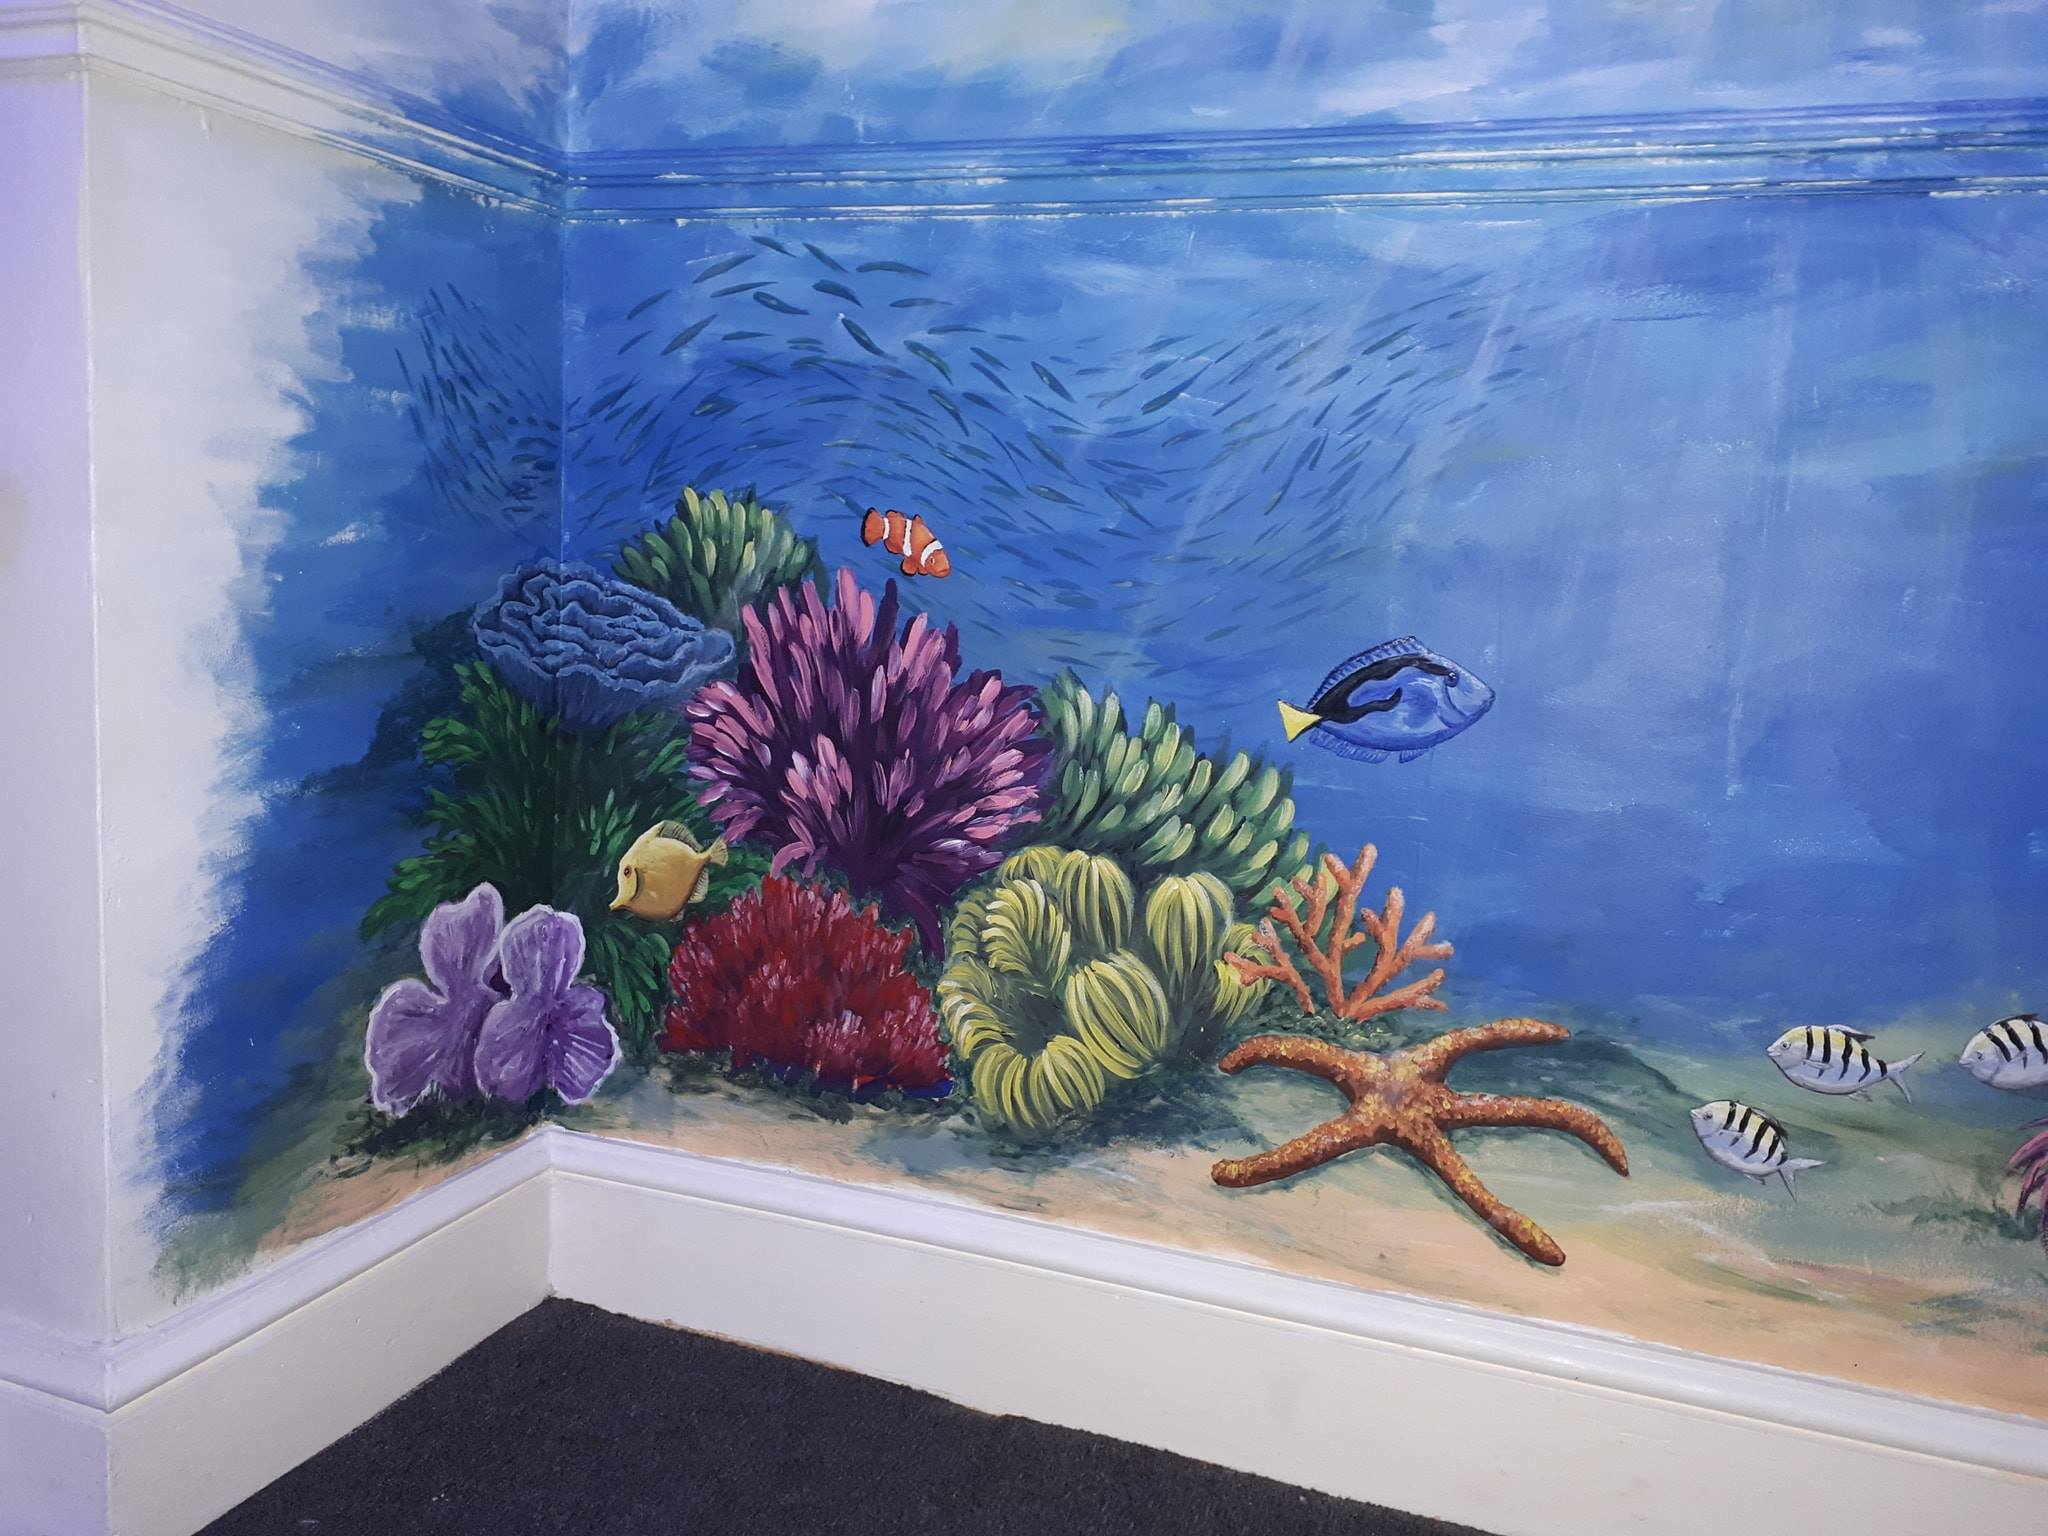 Community wall painted mural using cheap and affordable recycled paint from Community RePaint scheme.